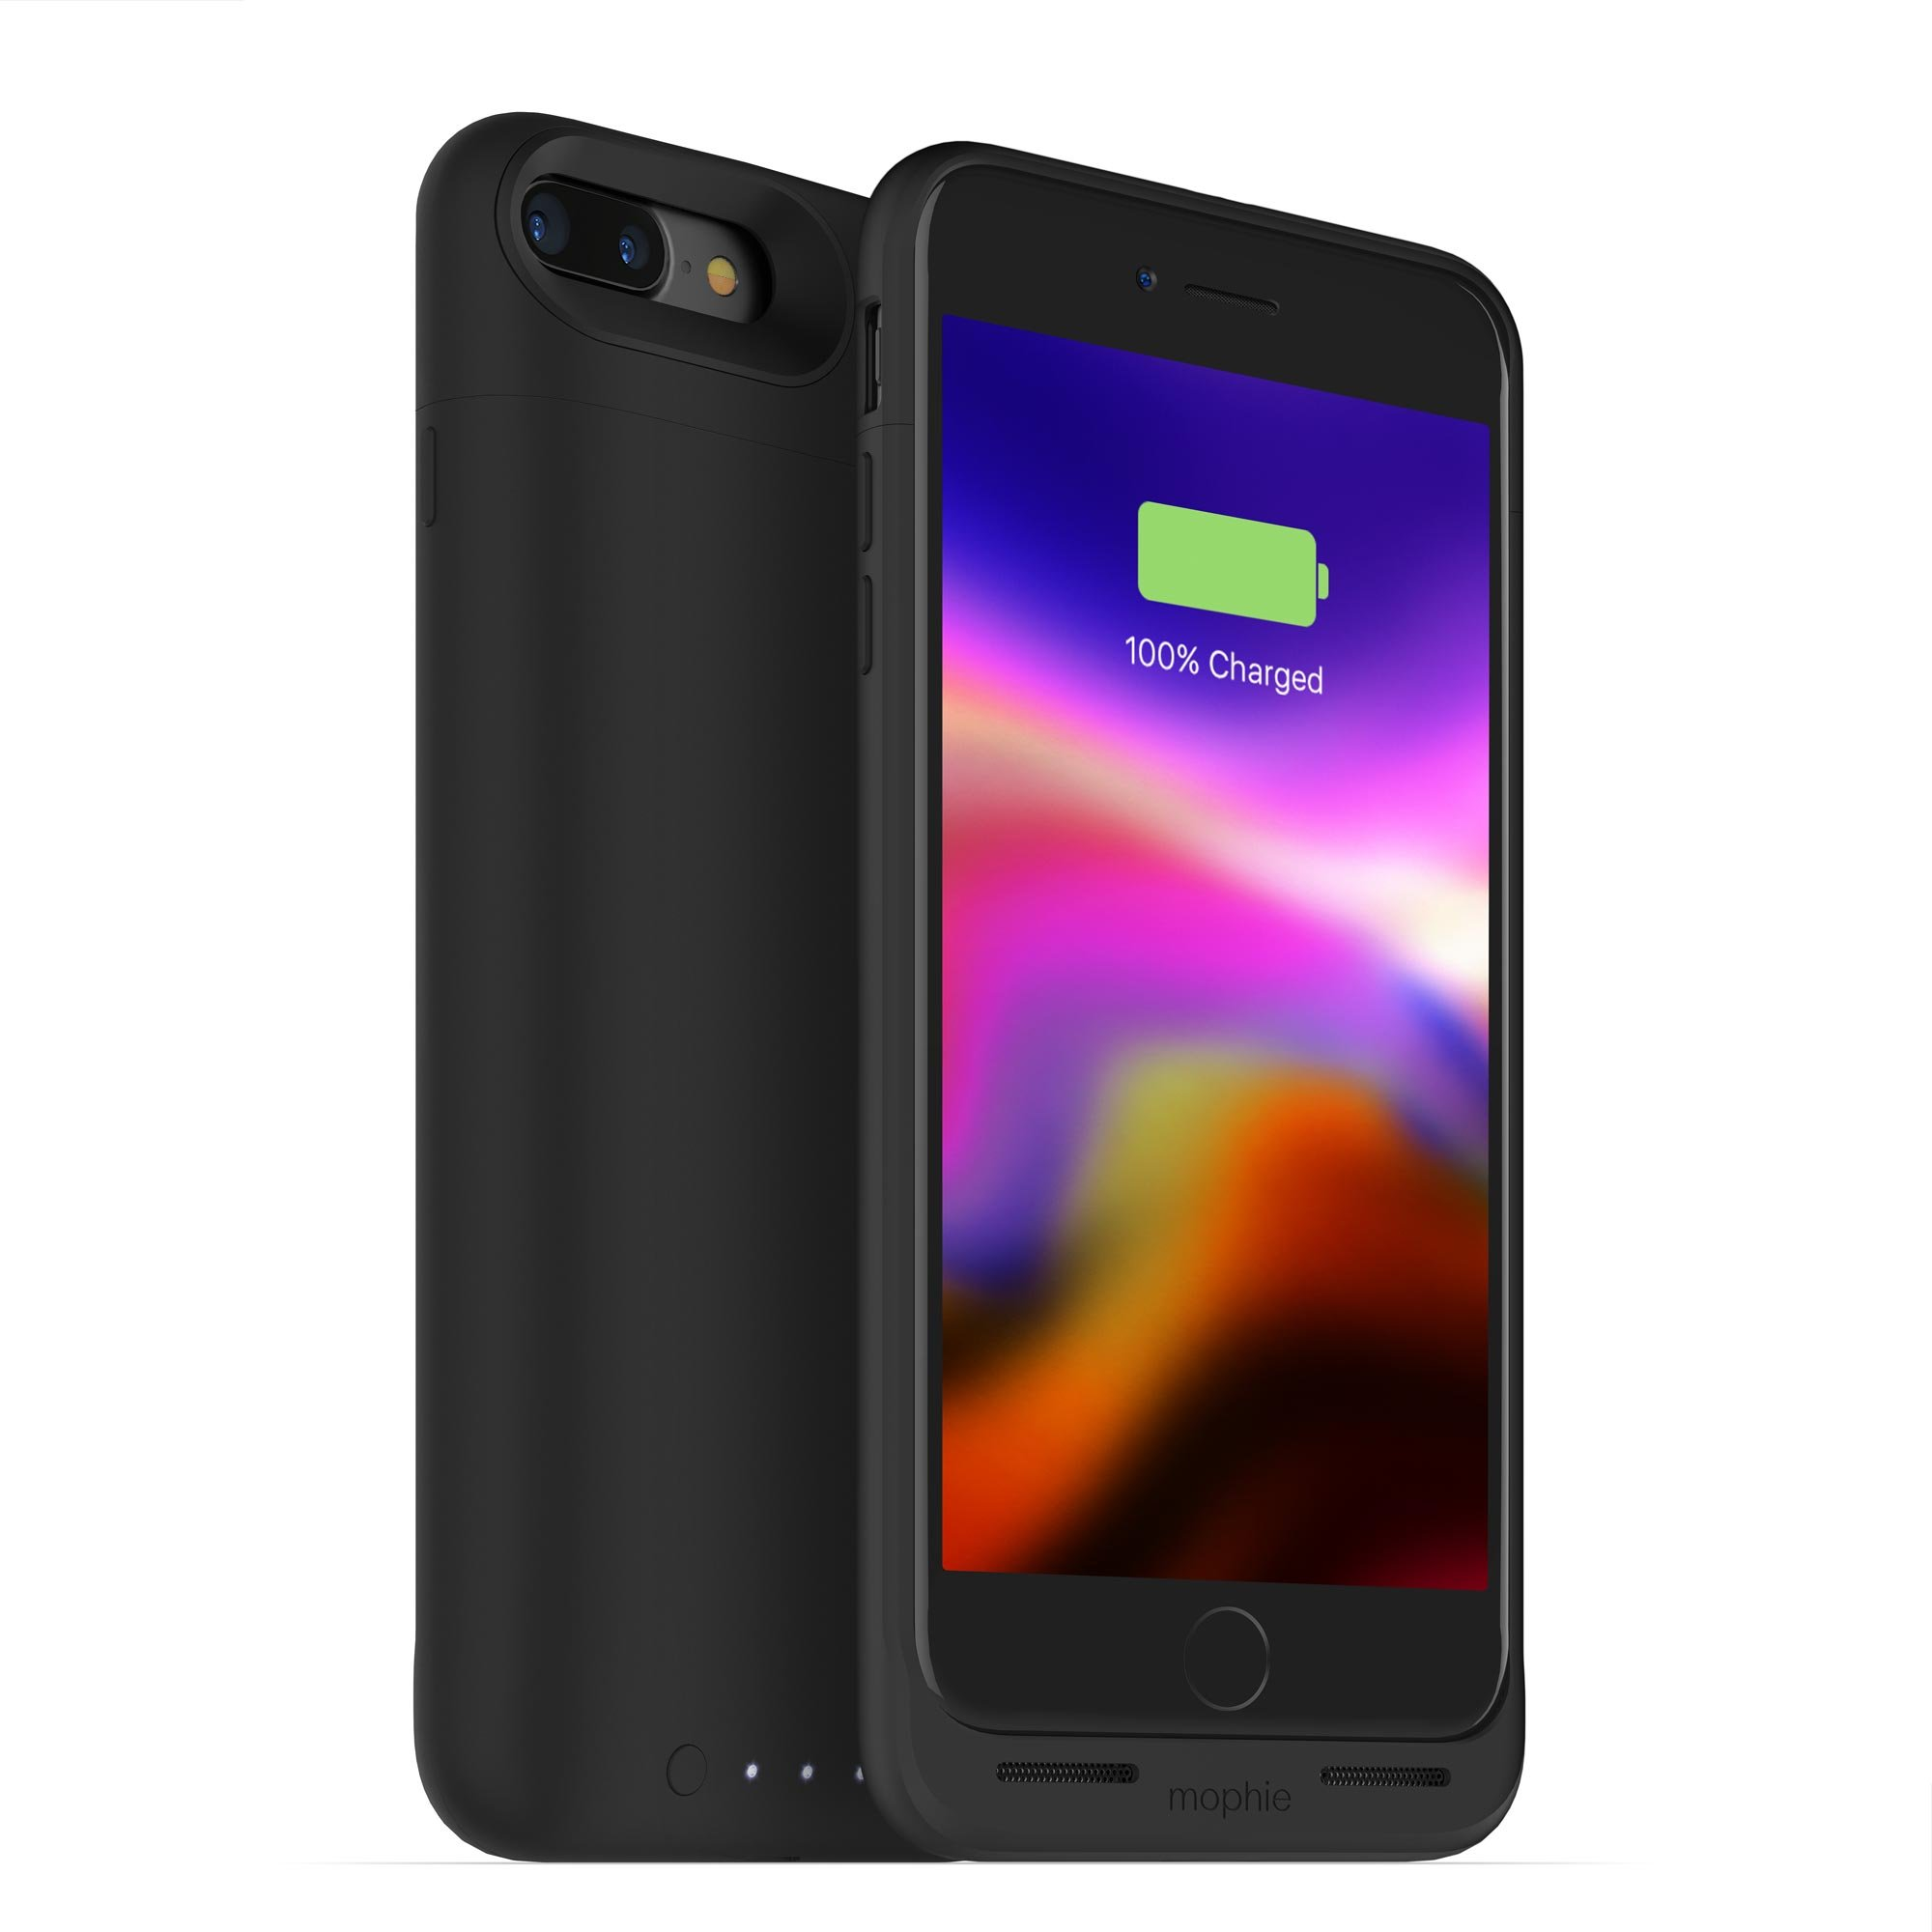 mophie juice pack wireless - Charge Force Wireless Power - Wireless Charging Protective Battery Pack Case for iPhone 7 Plus and 8 Plus - Black by mophie